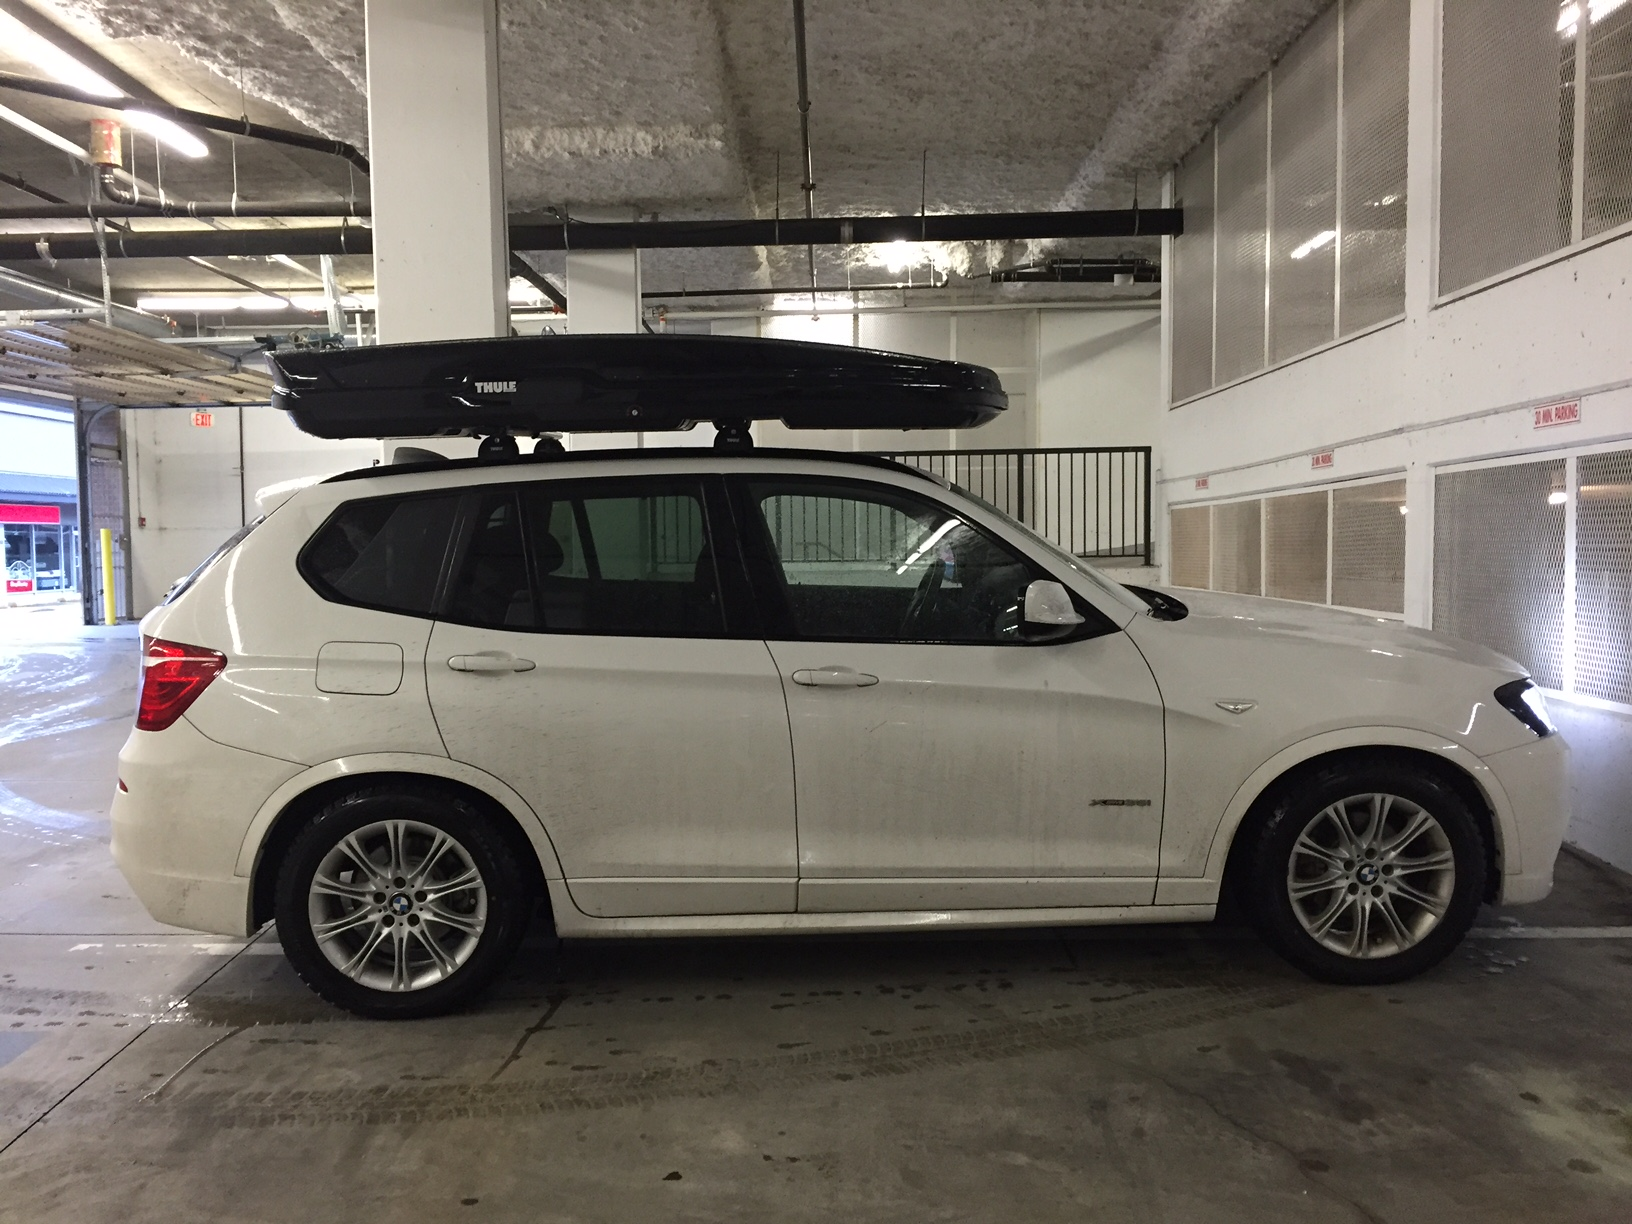 Ski Rack For Car >> Inspiring Bmw X1 Roof Rack – Aratorn Sport Cars